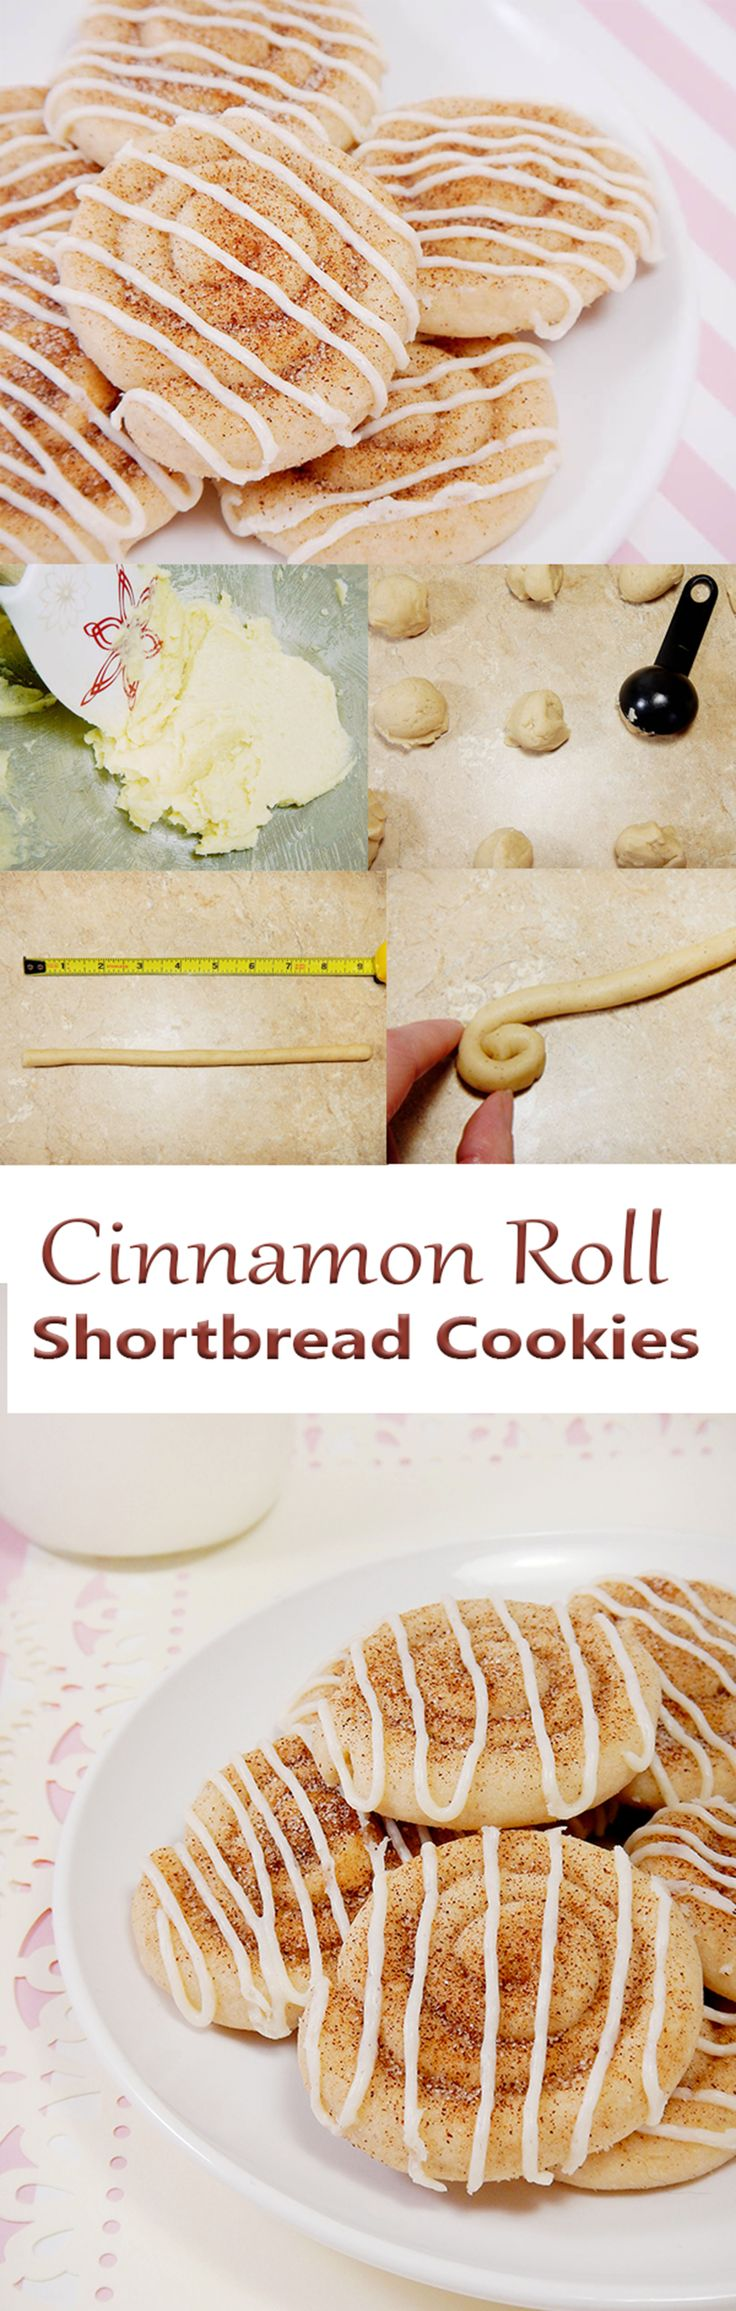 Cinnamon Roll Shortbread cookies.  These cinnamon swirled cookies make a sweet gift for Christmas, Mother's Day, or pretty much any holiday!  Photo tutorial included. Fun for kids to make.